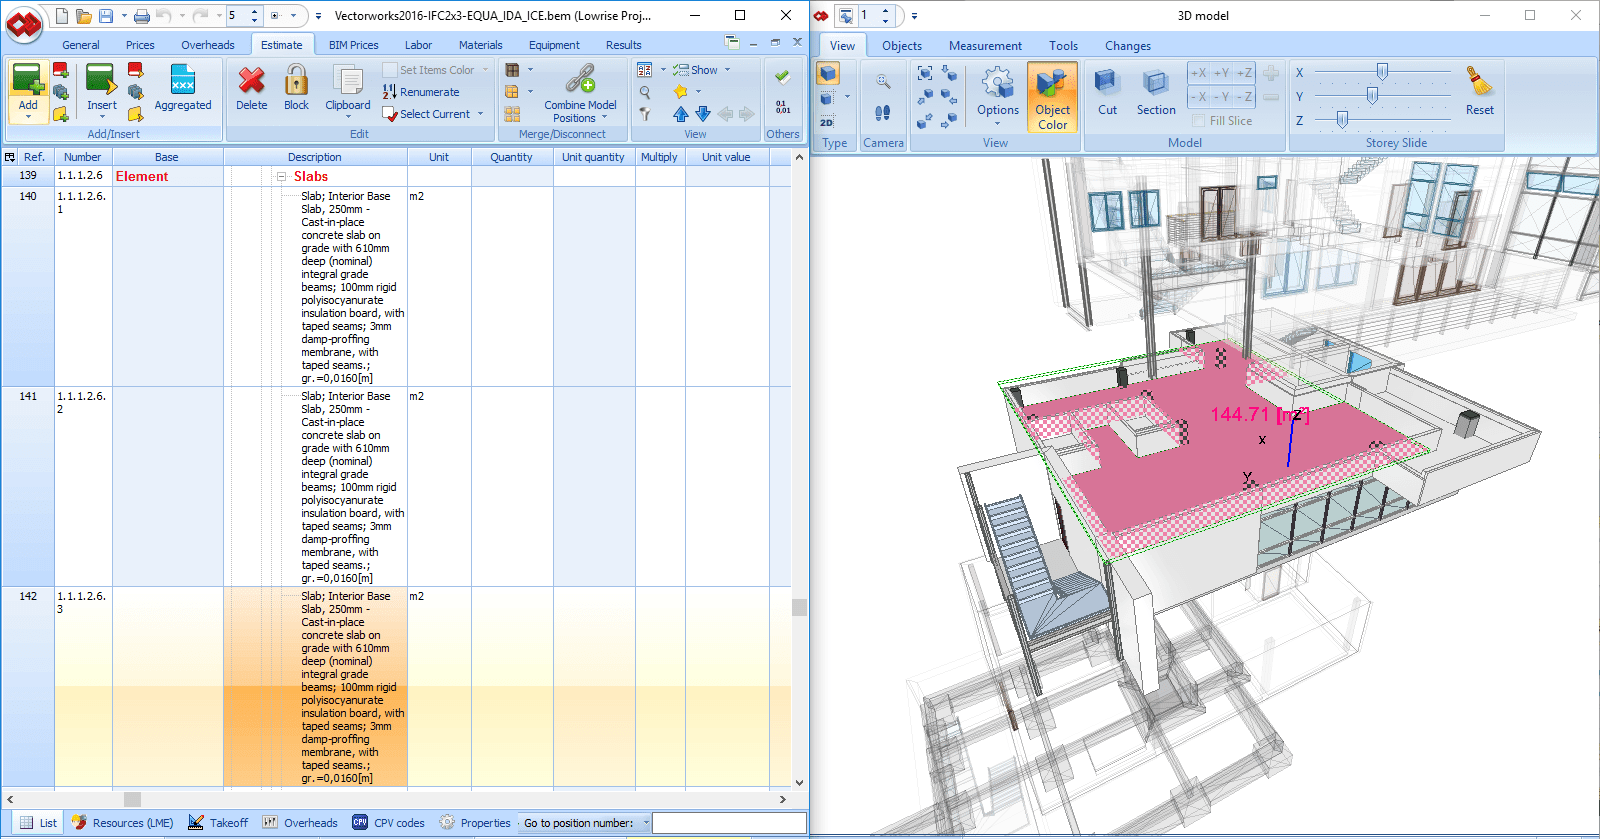 Displaying of a selected floor, storeys slide, area measurement, presentation of properties of an element.